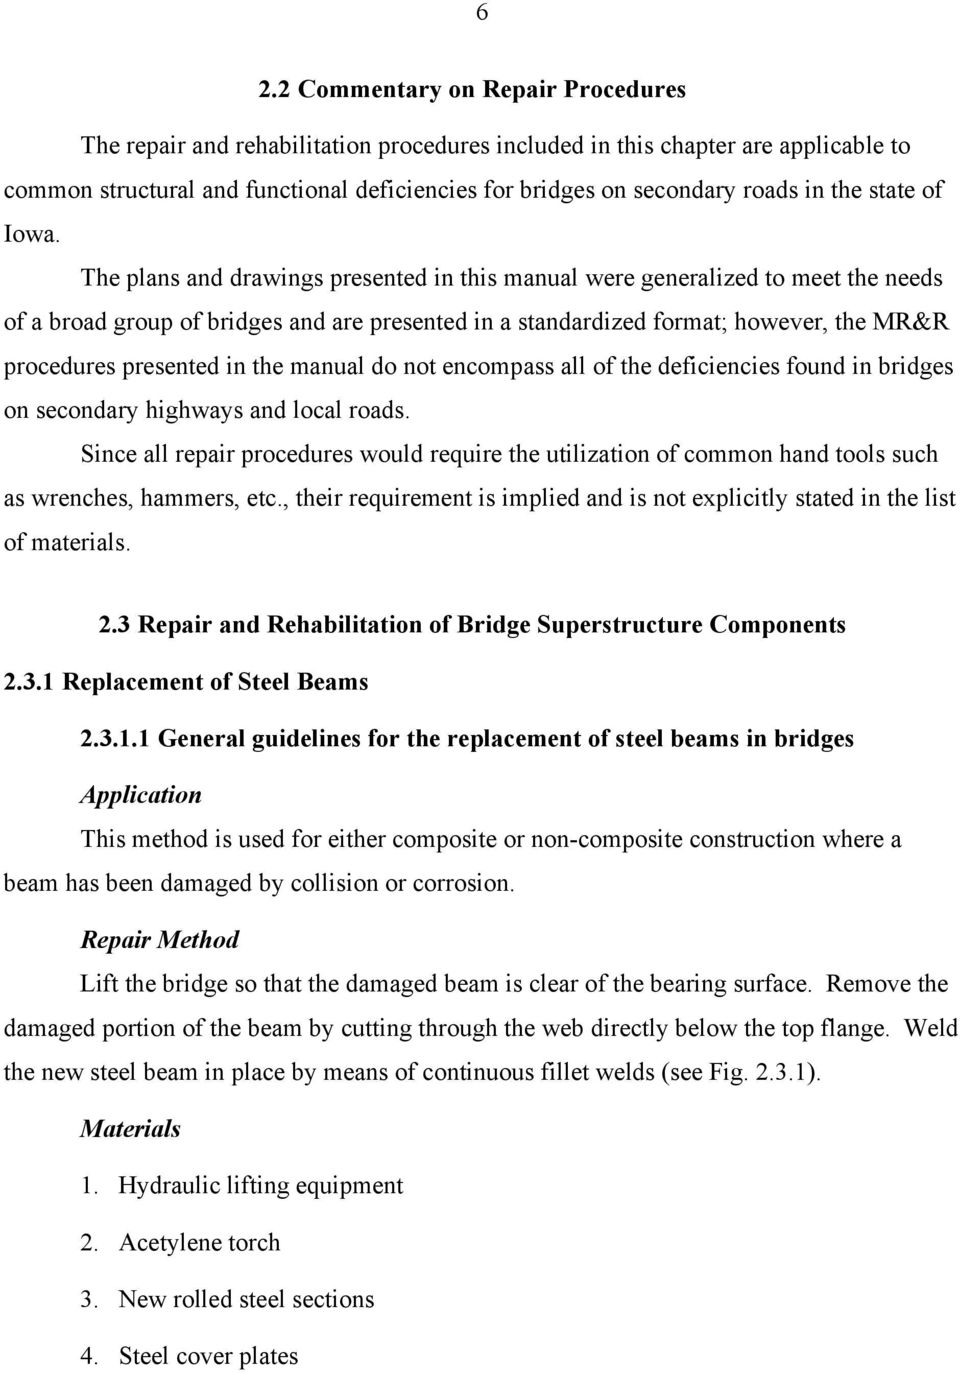 The plans and drawings presented in this manual were generalized to meet the needs of a broad group of bridges and are presented in a standardized format; however, the MR&R procedures presented in